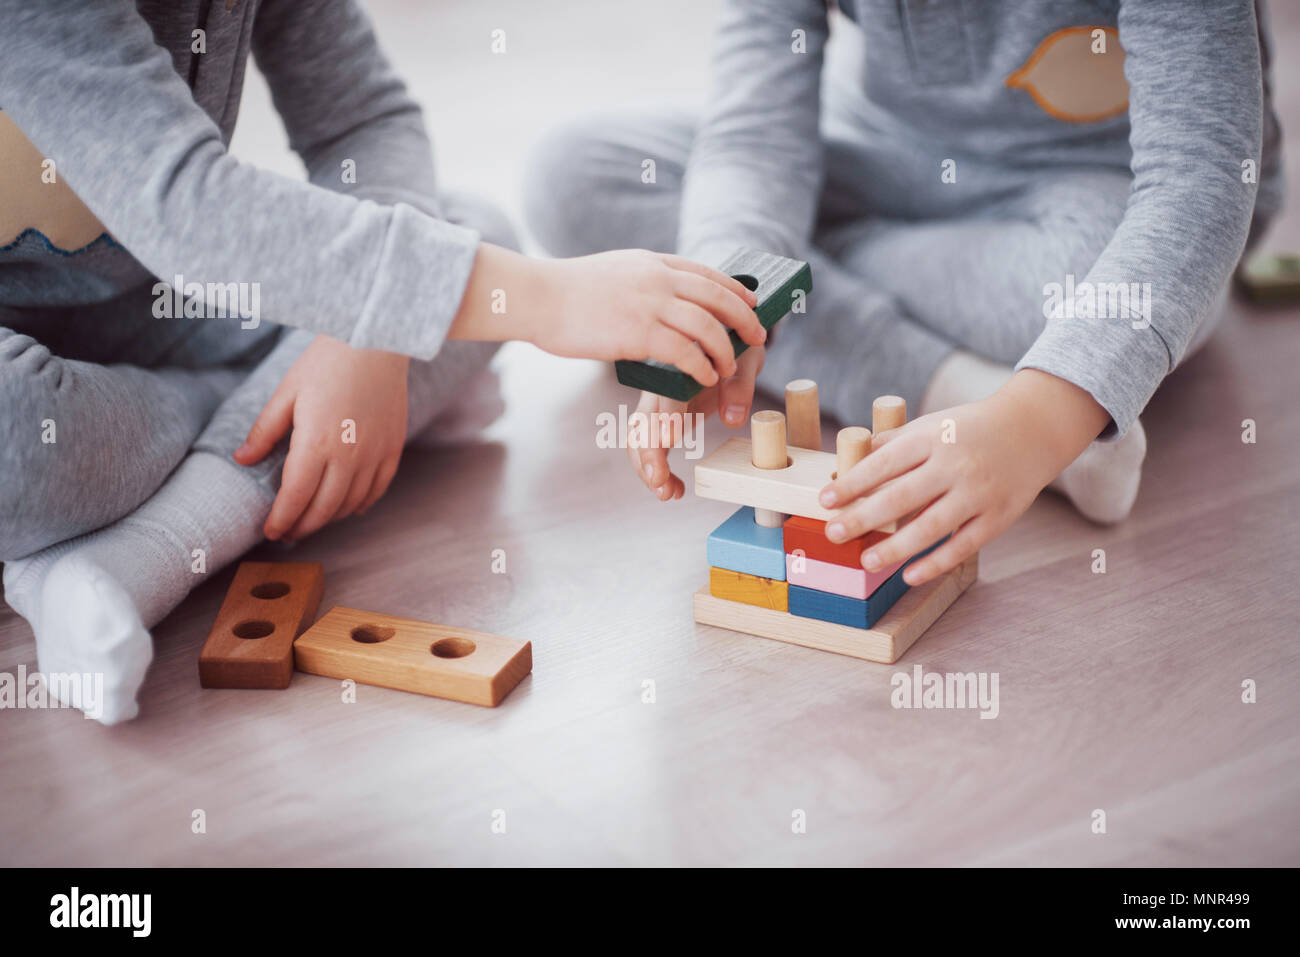 Children play with a toy designer on the floor of the children's room. Two kids playing with colorful blocks. Kindergarten educational games - Stock Image